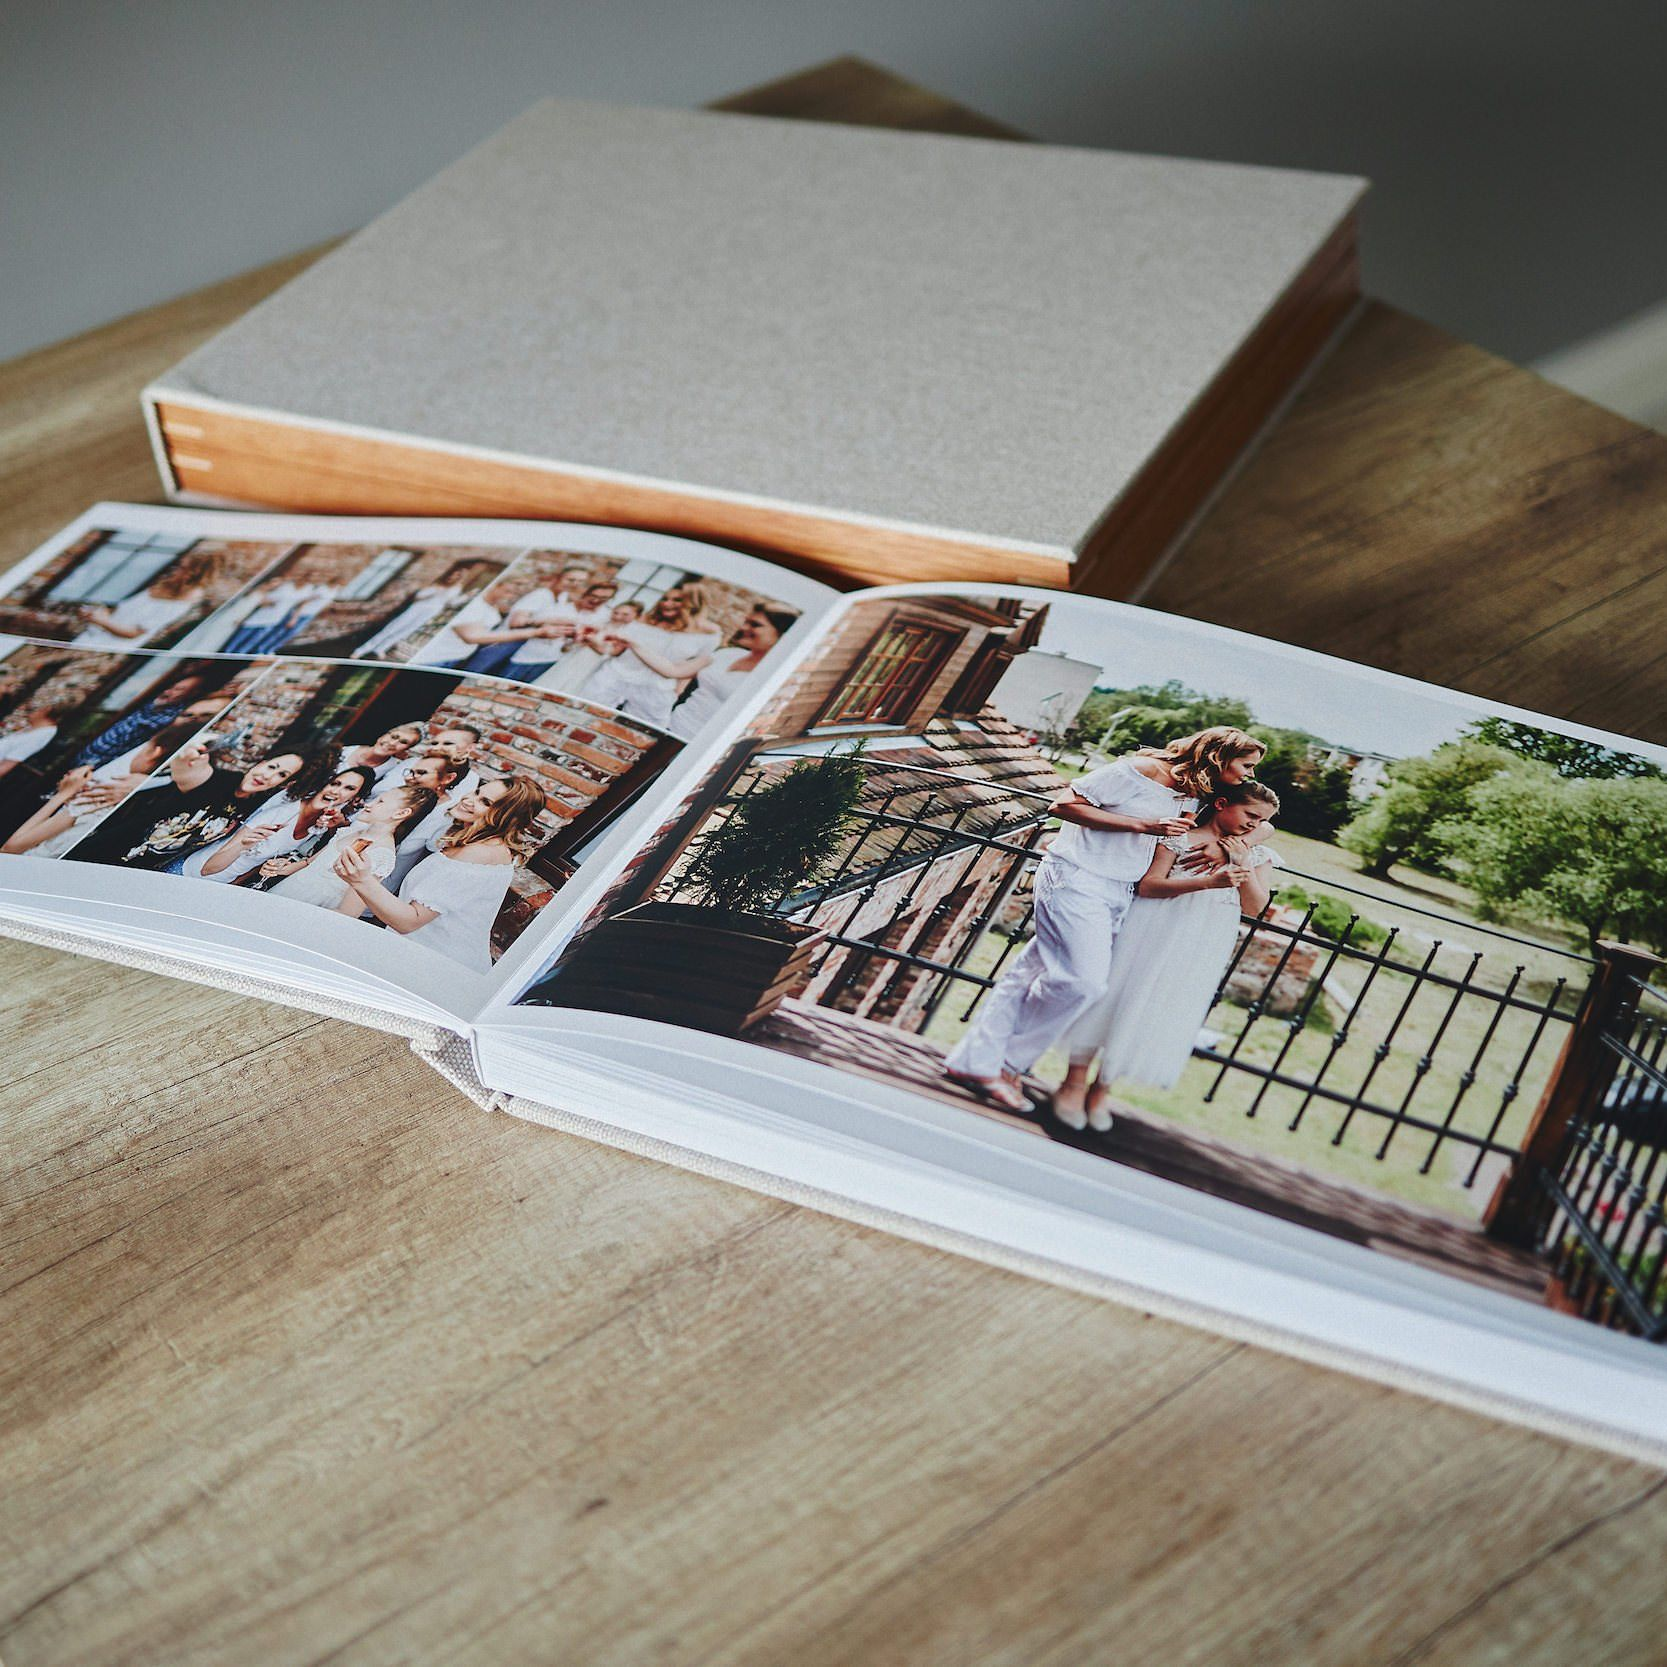 1 Standard and 2 Parents wedding albums (40 pages-100 photos) 7